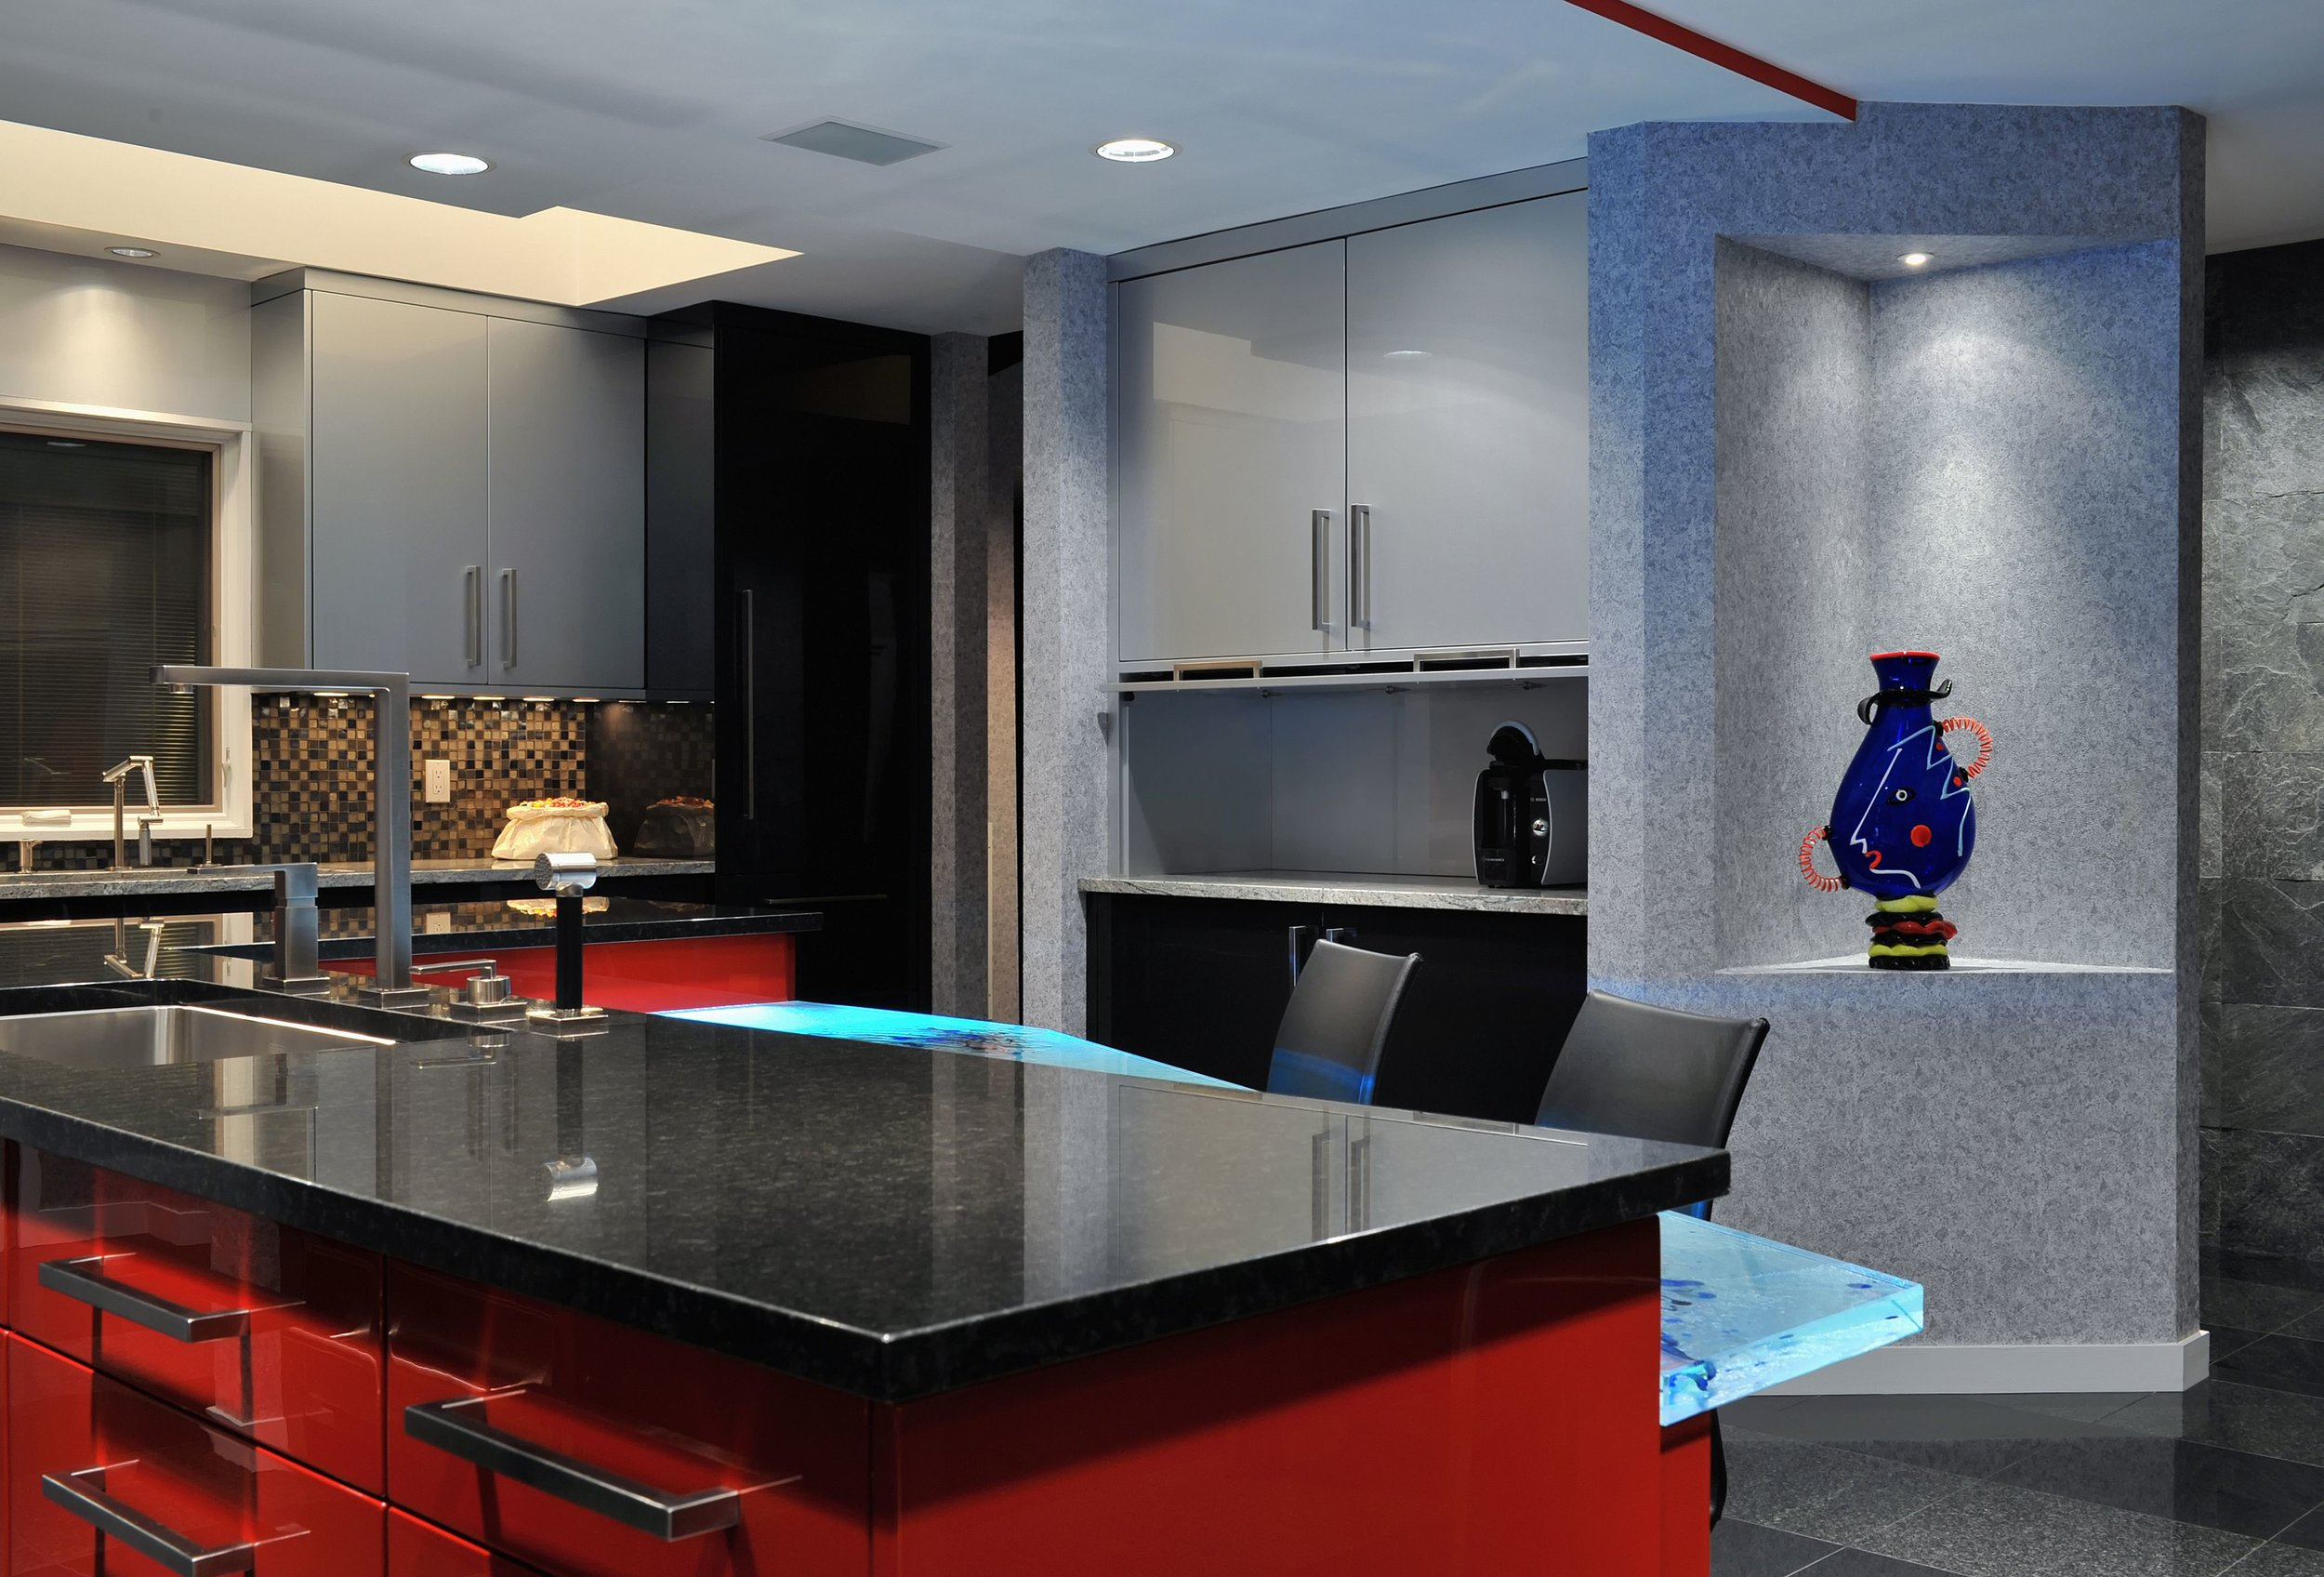 Contemporary style kitchen with modern kitchen backsplash